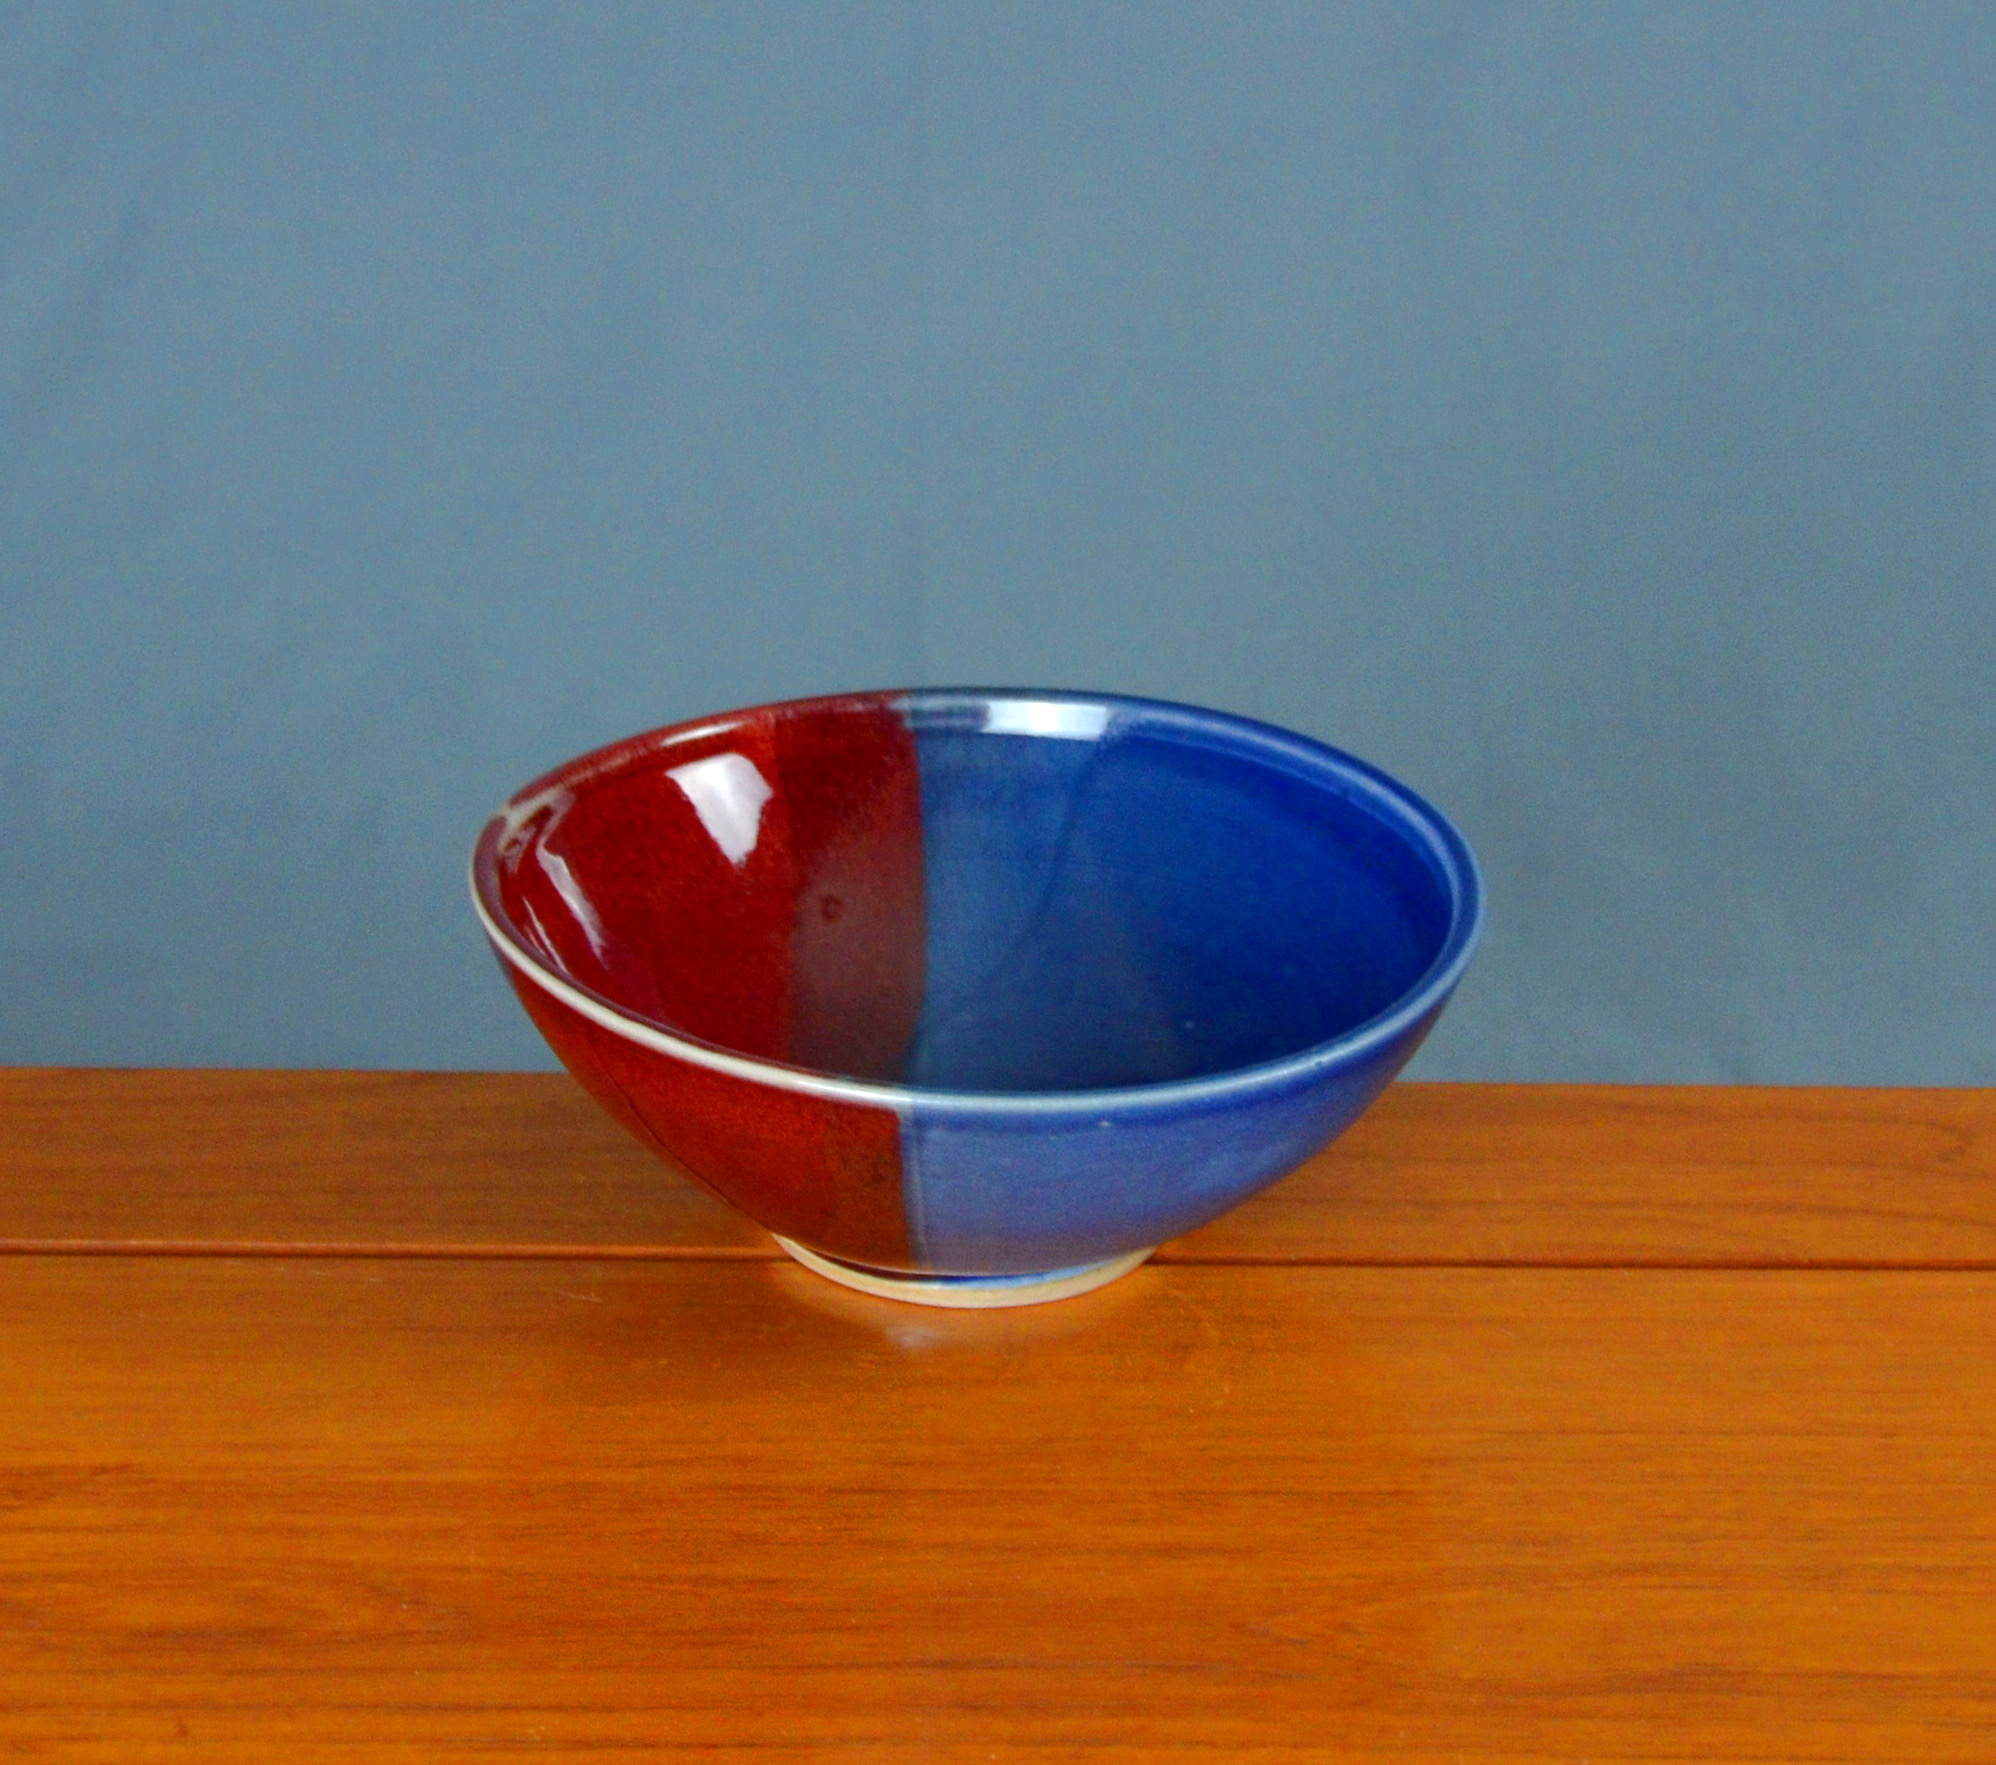 Porcelain Red & Blue Japanese Bowl | Hand thrown porcelain on a potter's wheel.  High Fired, Cone 10, Vegas Red & Flambe Blue Glazes, Hand Trimmed, Ceramic | Caldwell Pottery